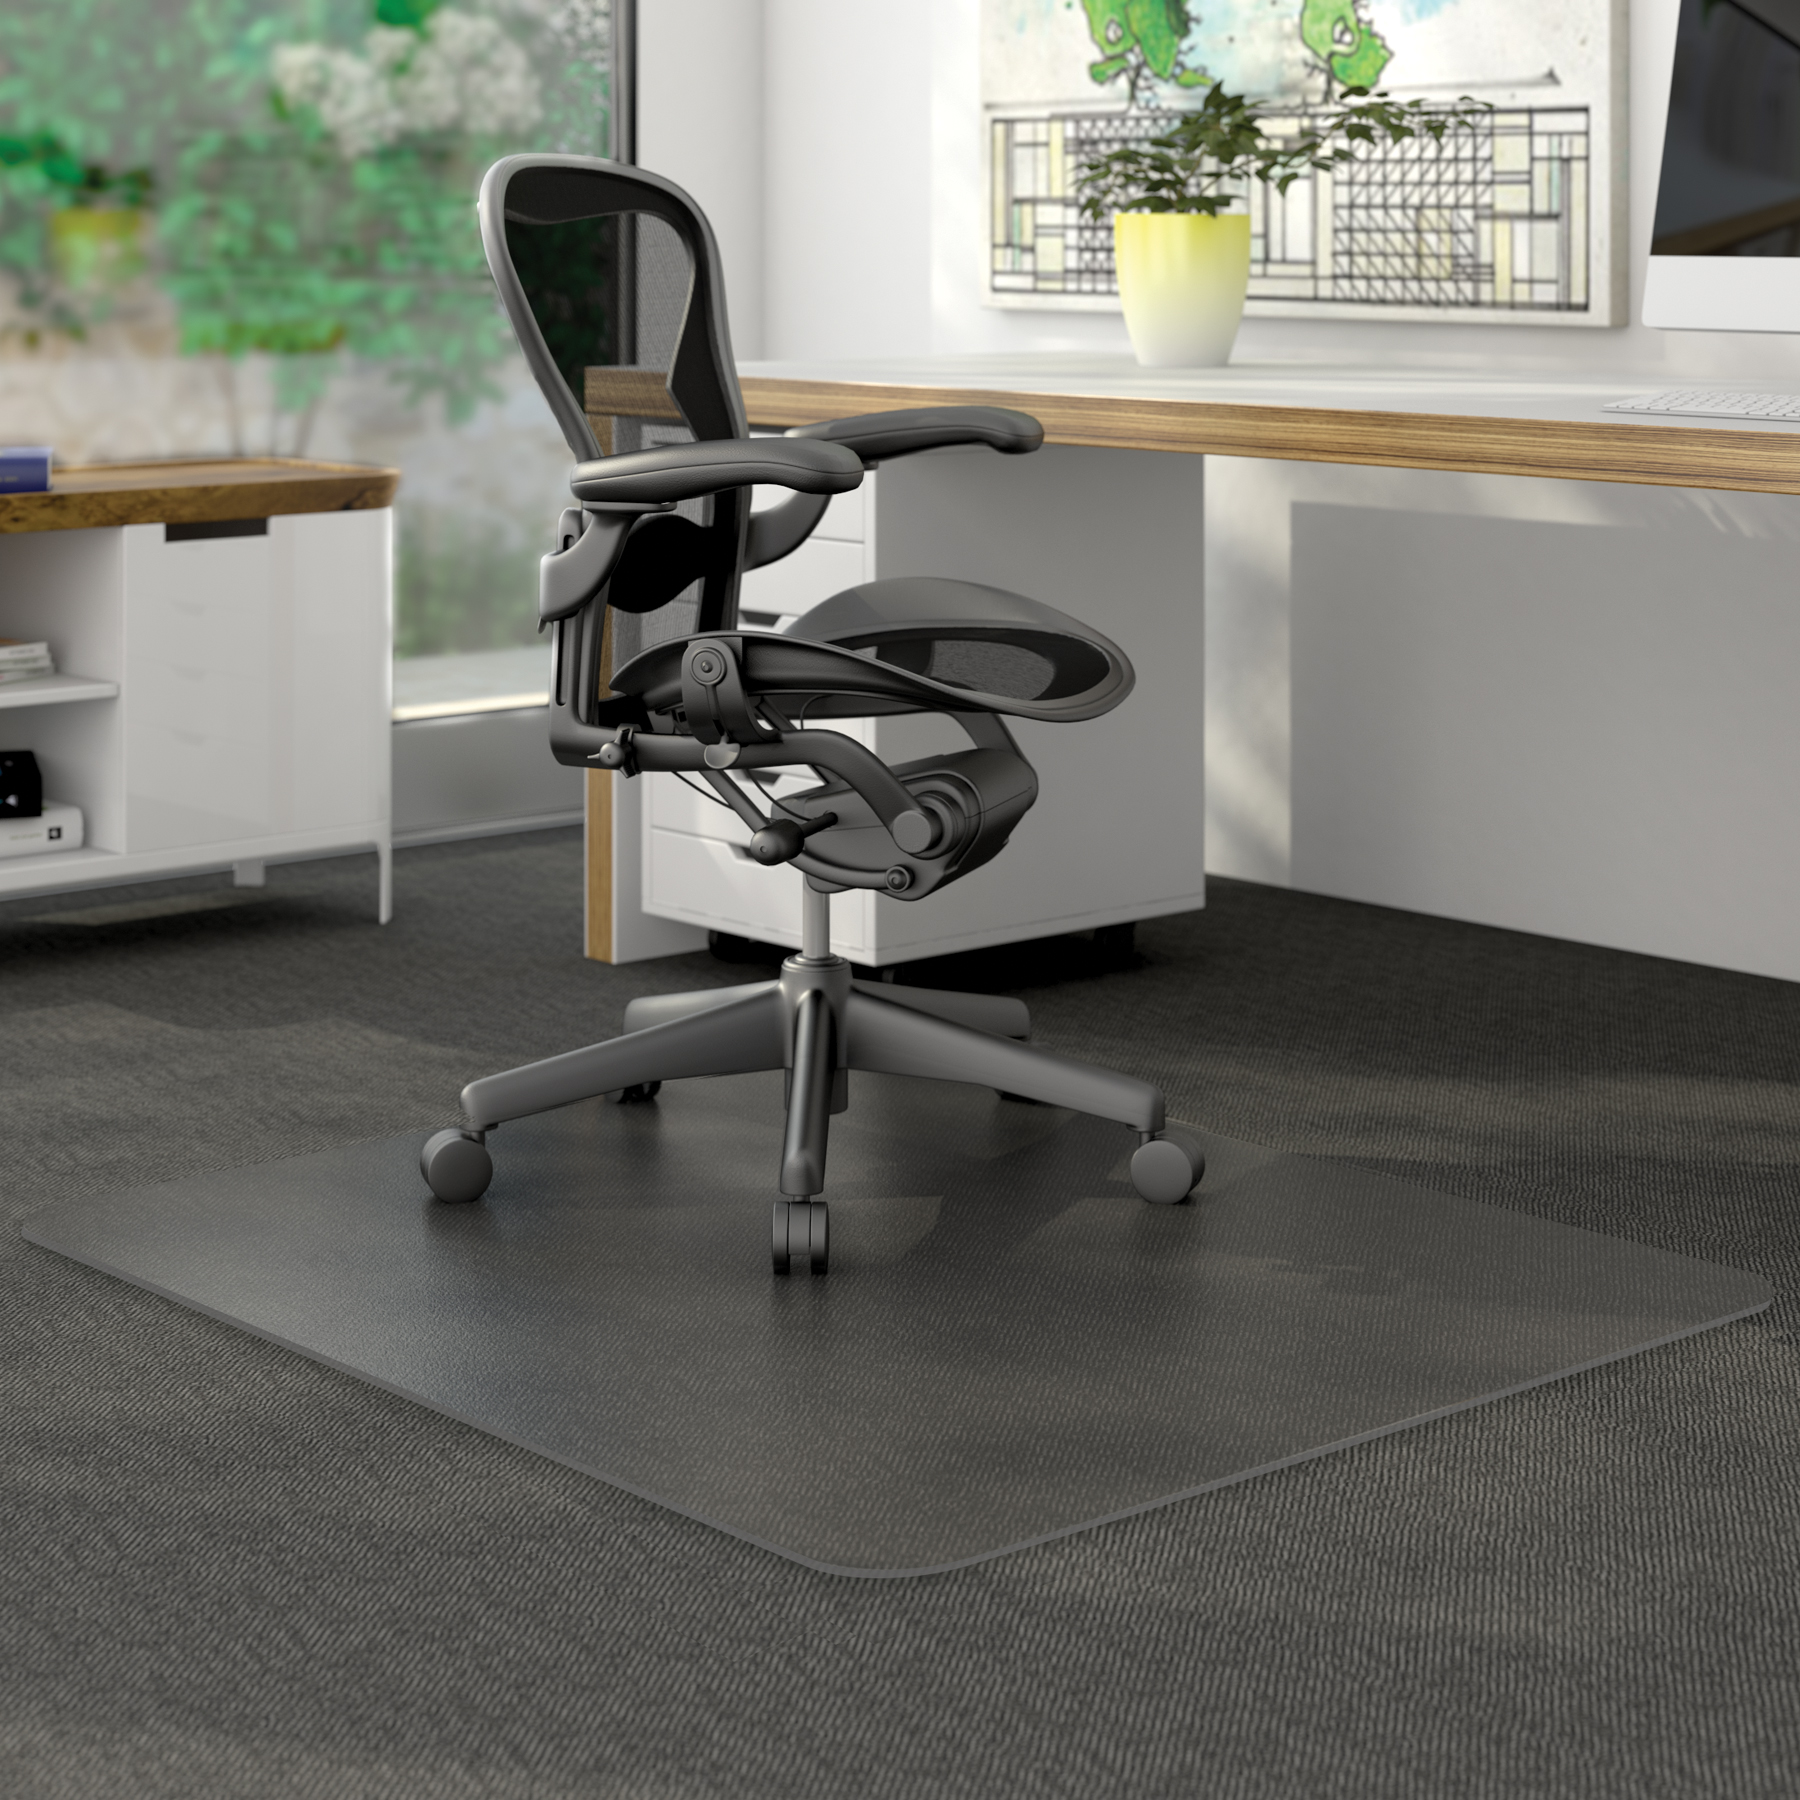 for mat office floor transparent anti static carpet mats chair